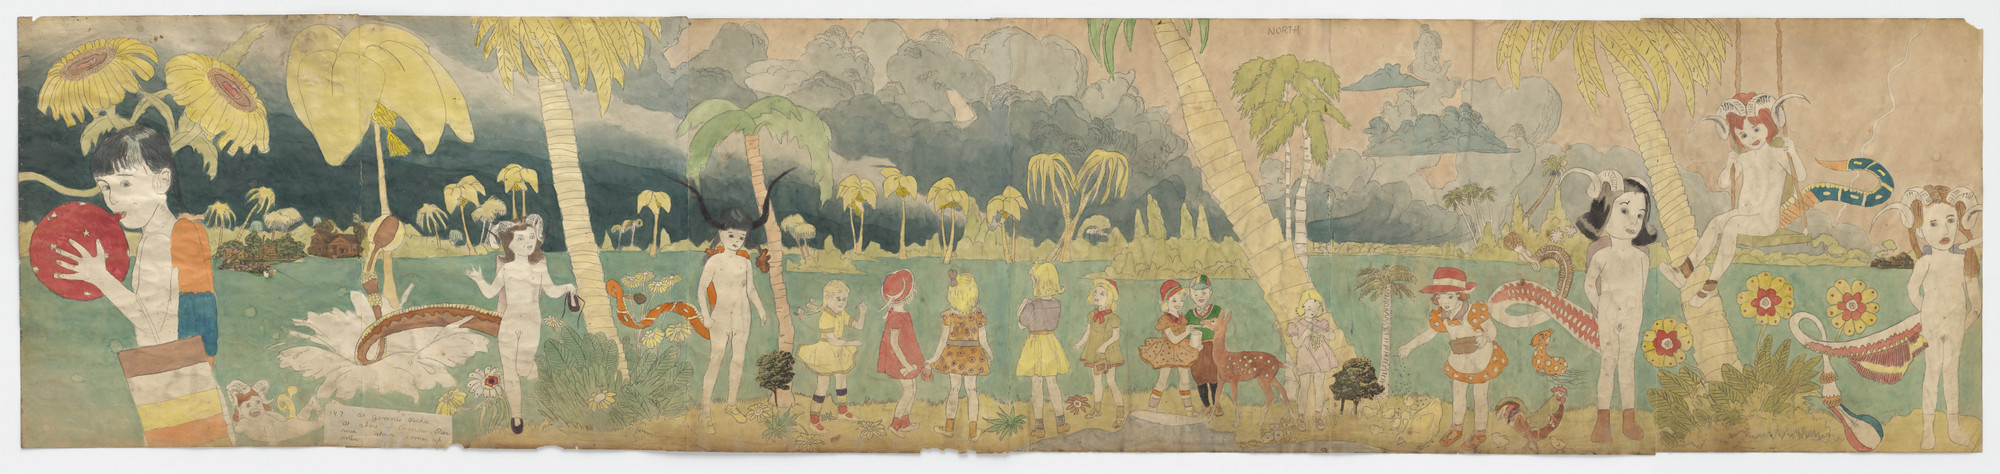 Henry Darger. a) At Jennie Richee At shore of Aronburg Run River...  b) Untitled (Girl swinging on vine). (n.d.)